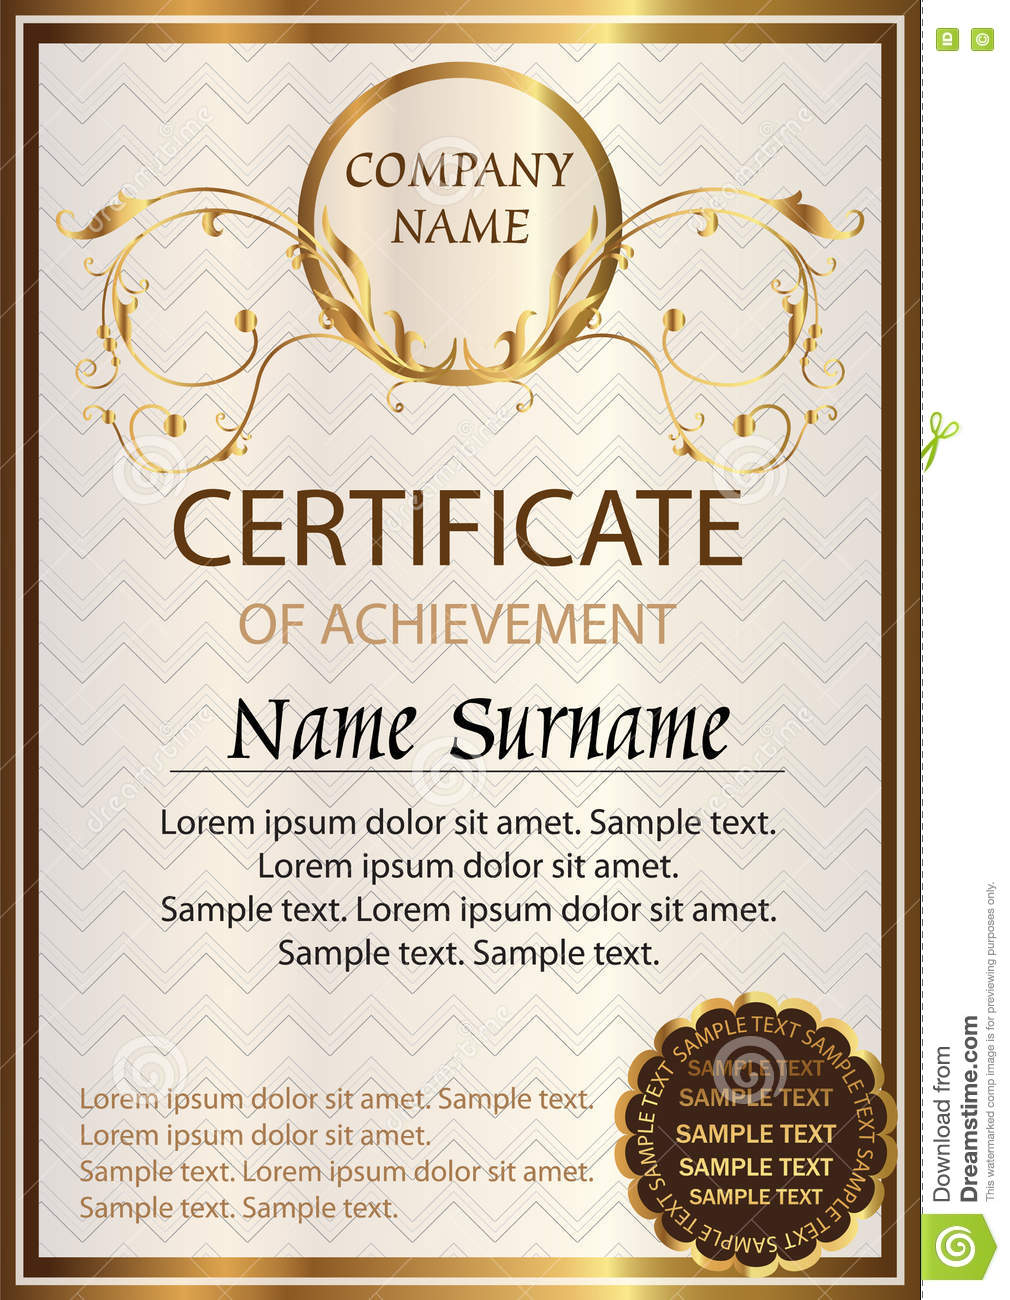 Certificate or diploma template award winner stock vector image royalty free vector download certificate or diploma template award yadclub Choice Image